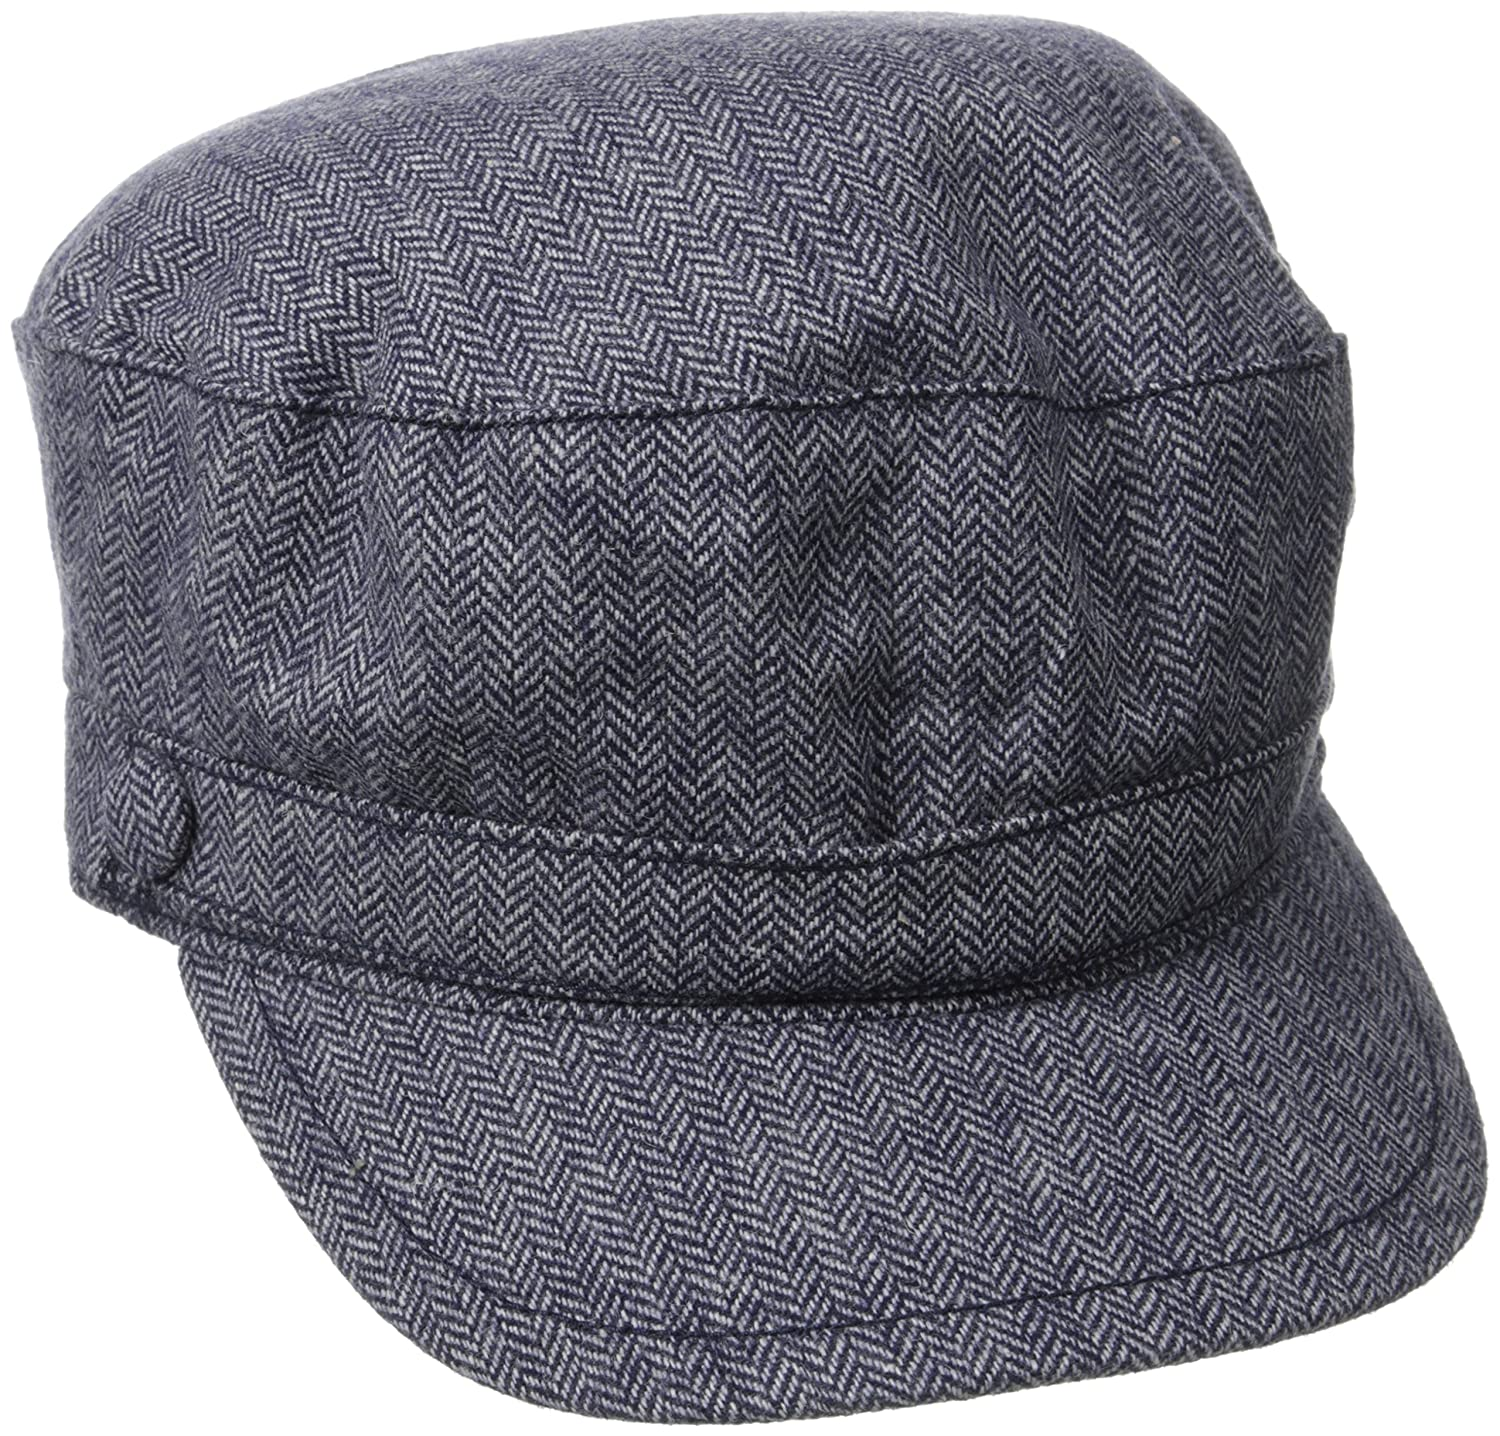 Life is good Women's Mini Herringbone Captains Hat (True Blue), One Size The Life is good Company 26334